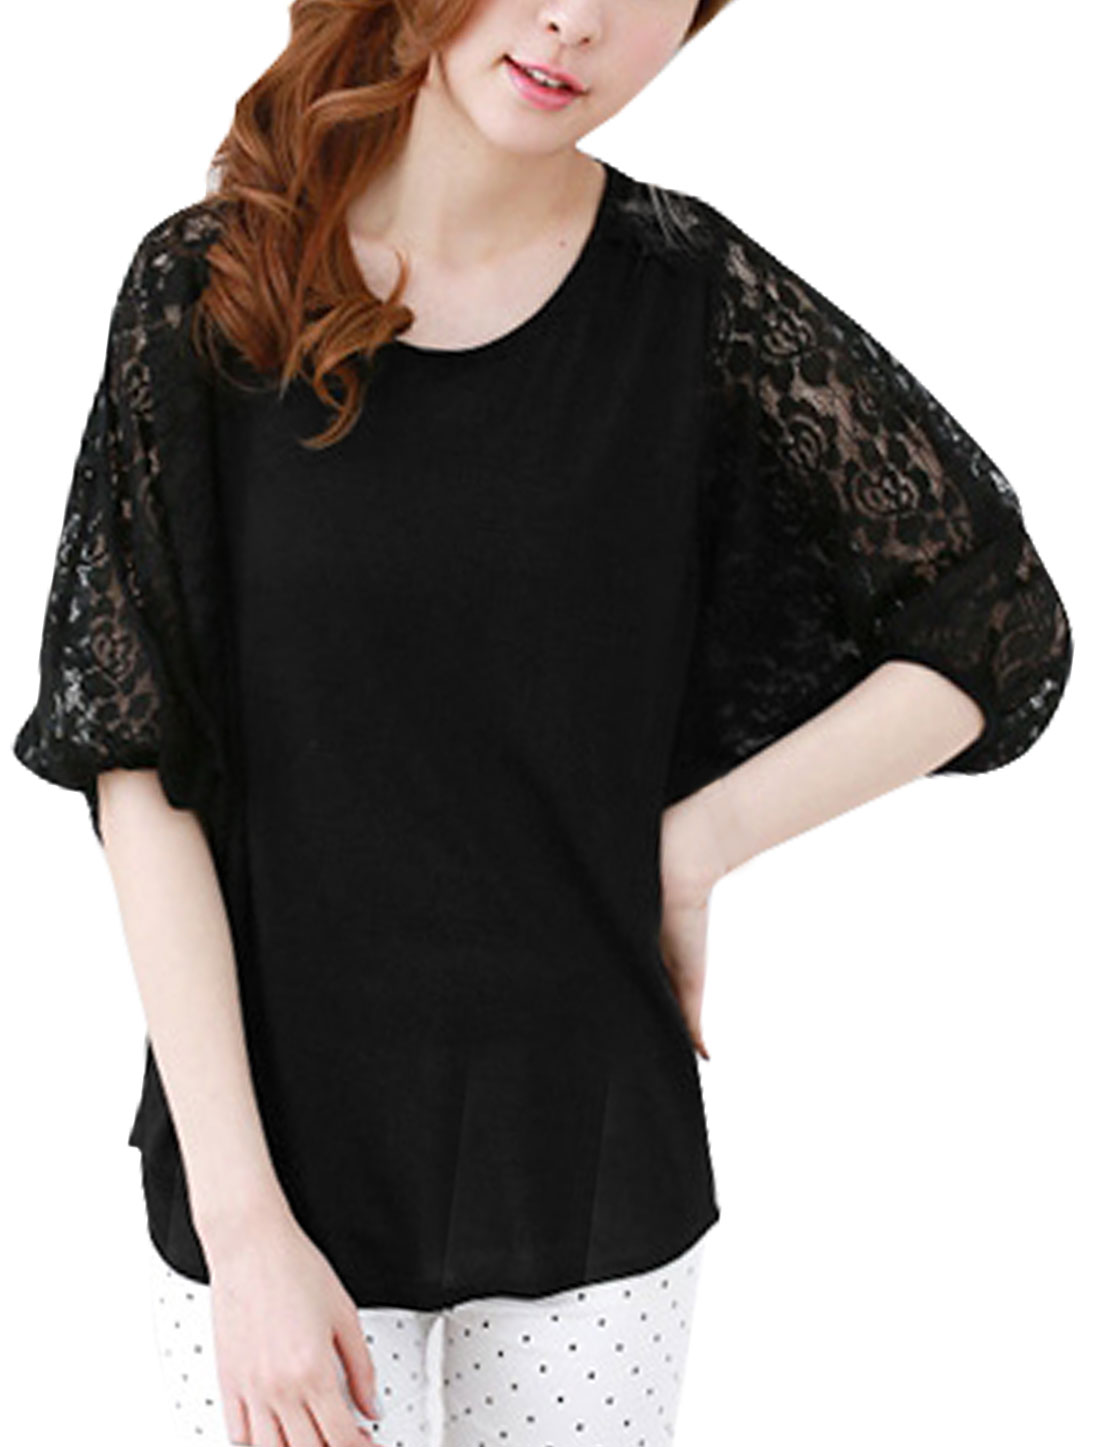 Women Floral Lace 3/4 Sleeves Hi-Lo Blouse Black XS